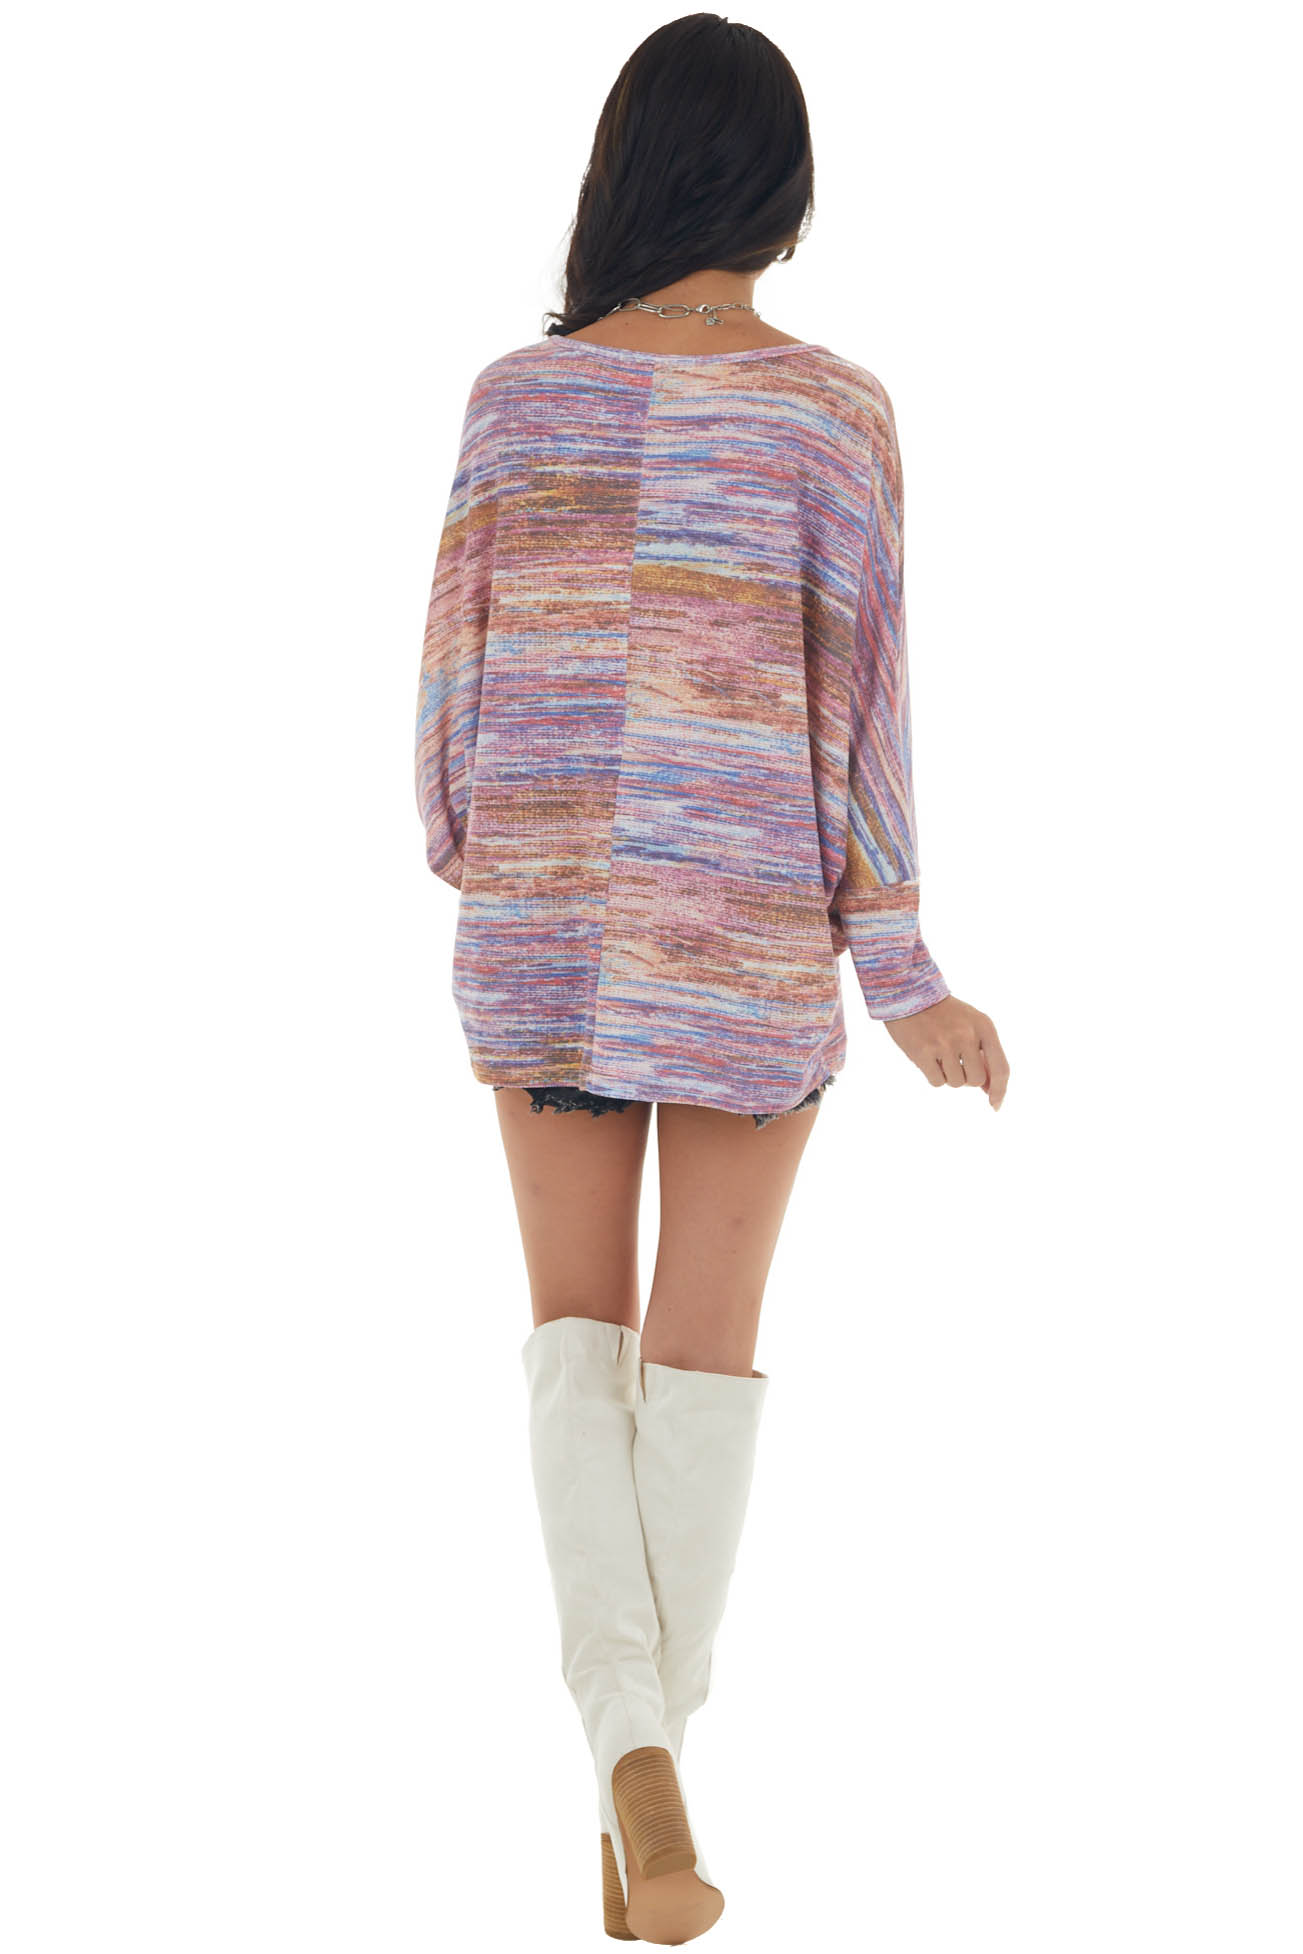 Multicolored Knit Top with Long Dolman Sleeves